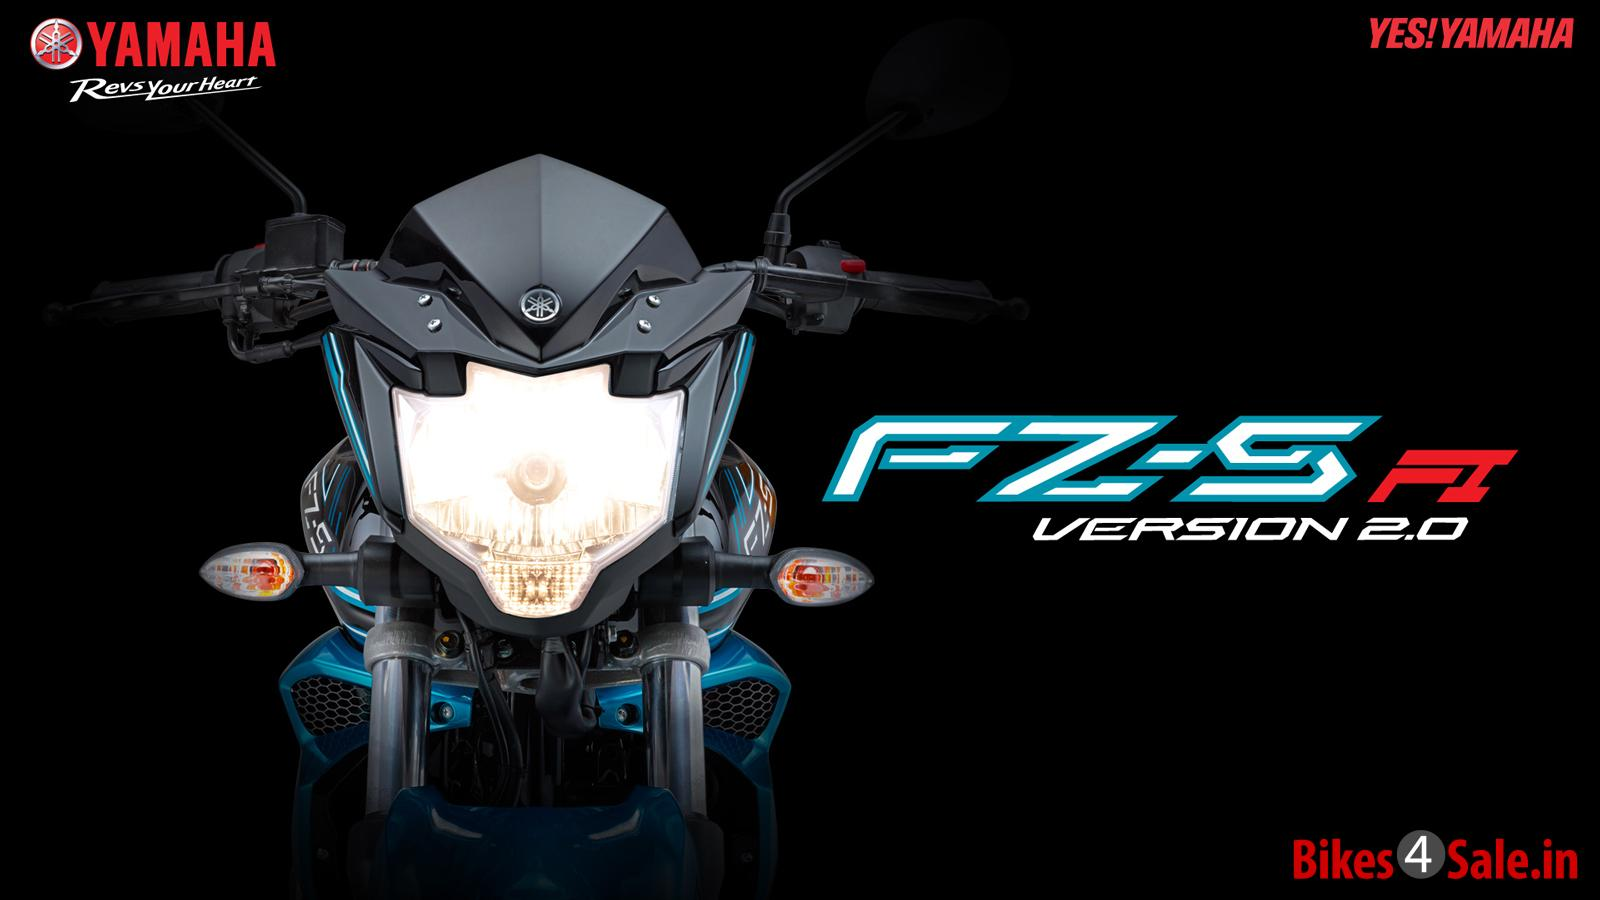 Yamaha FZ-S FI V2 Motorcycle Picture Gallery